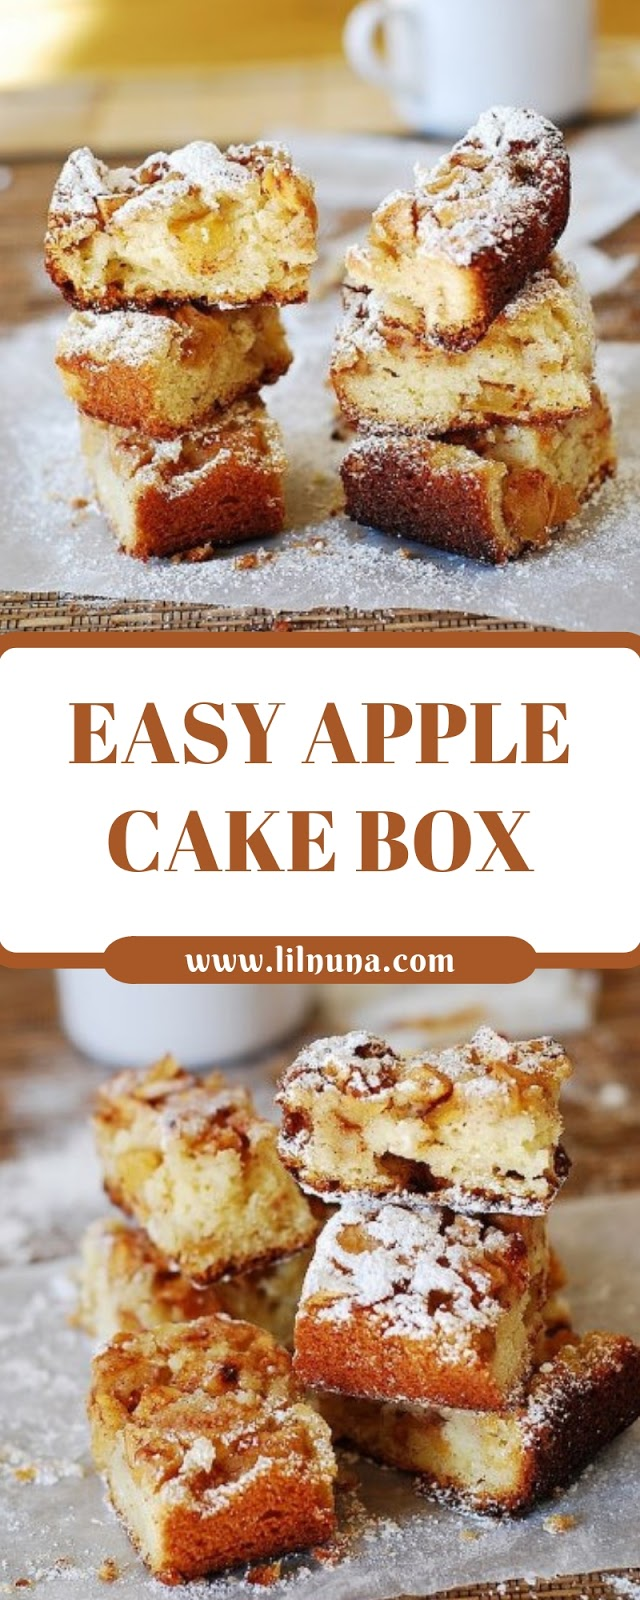 EASY APPLE CAKE BOX